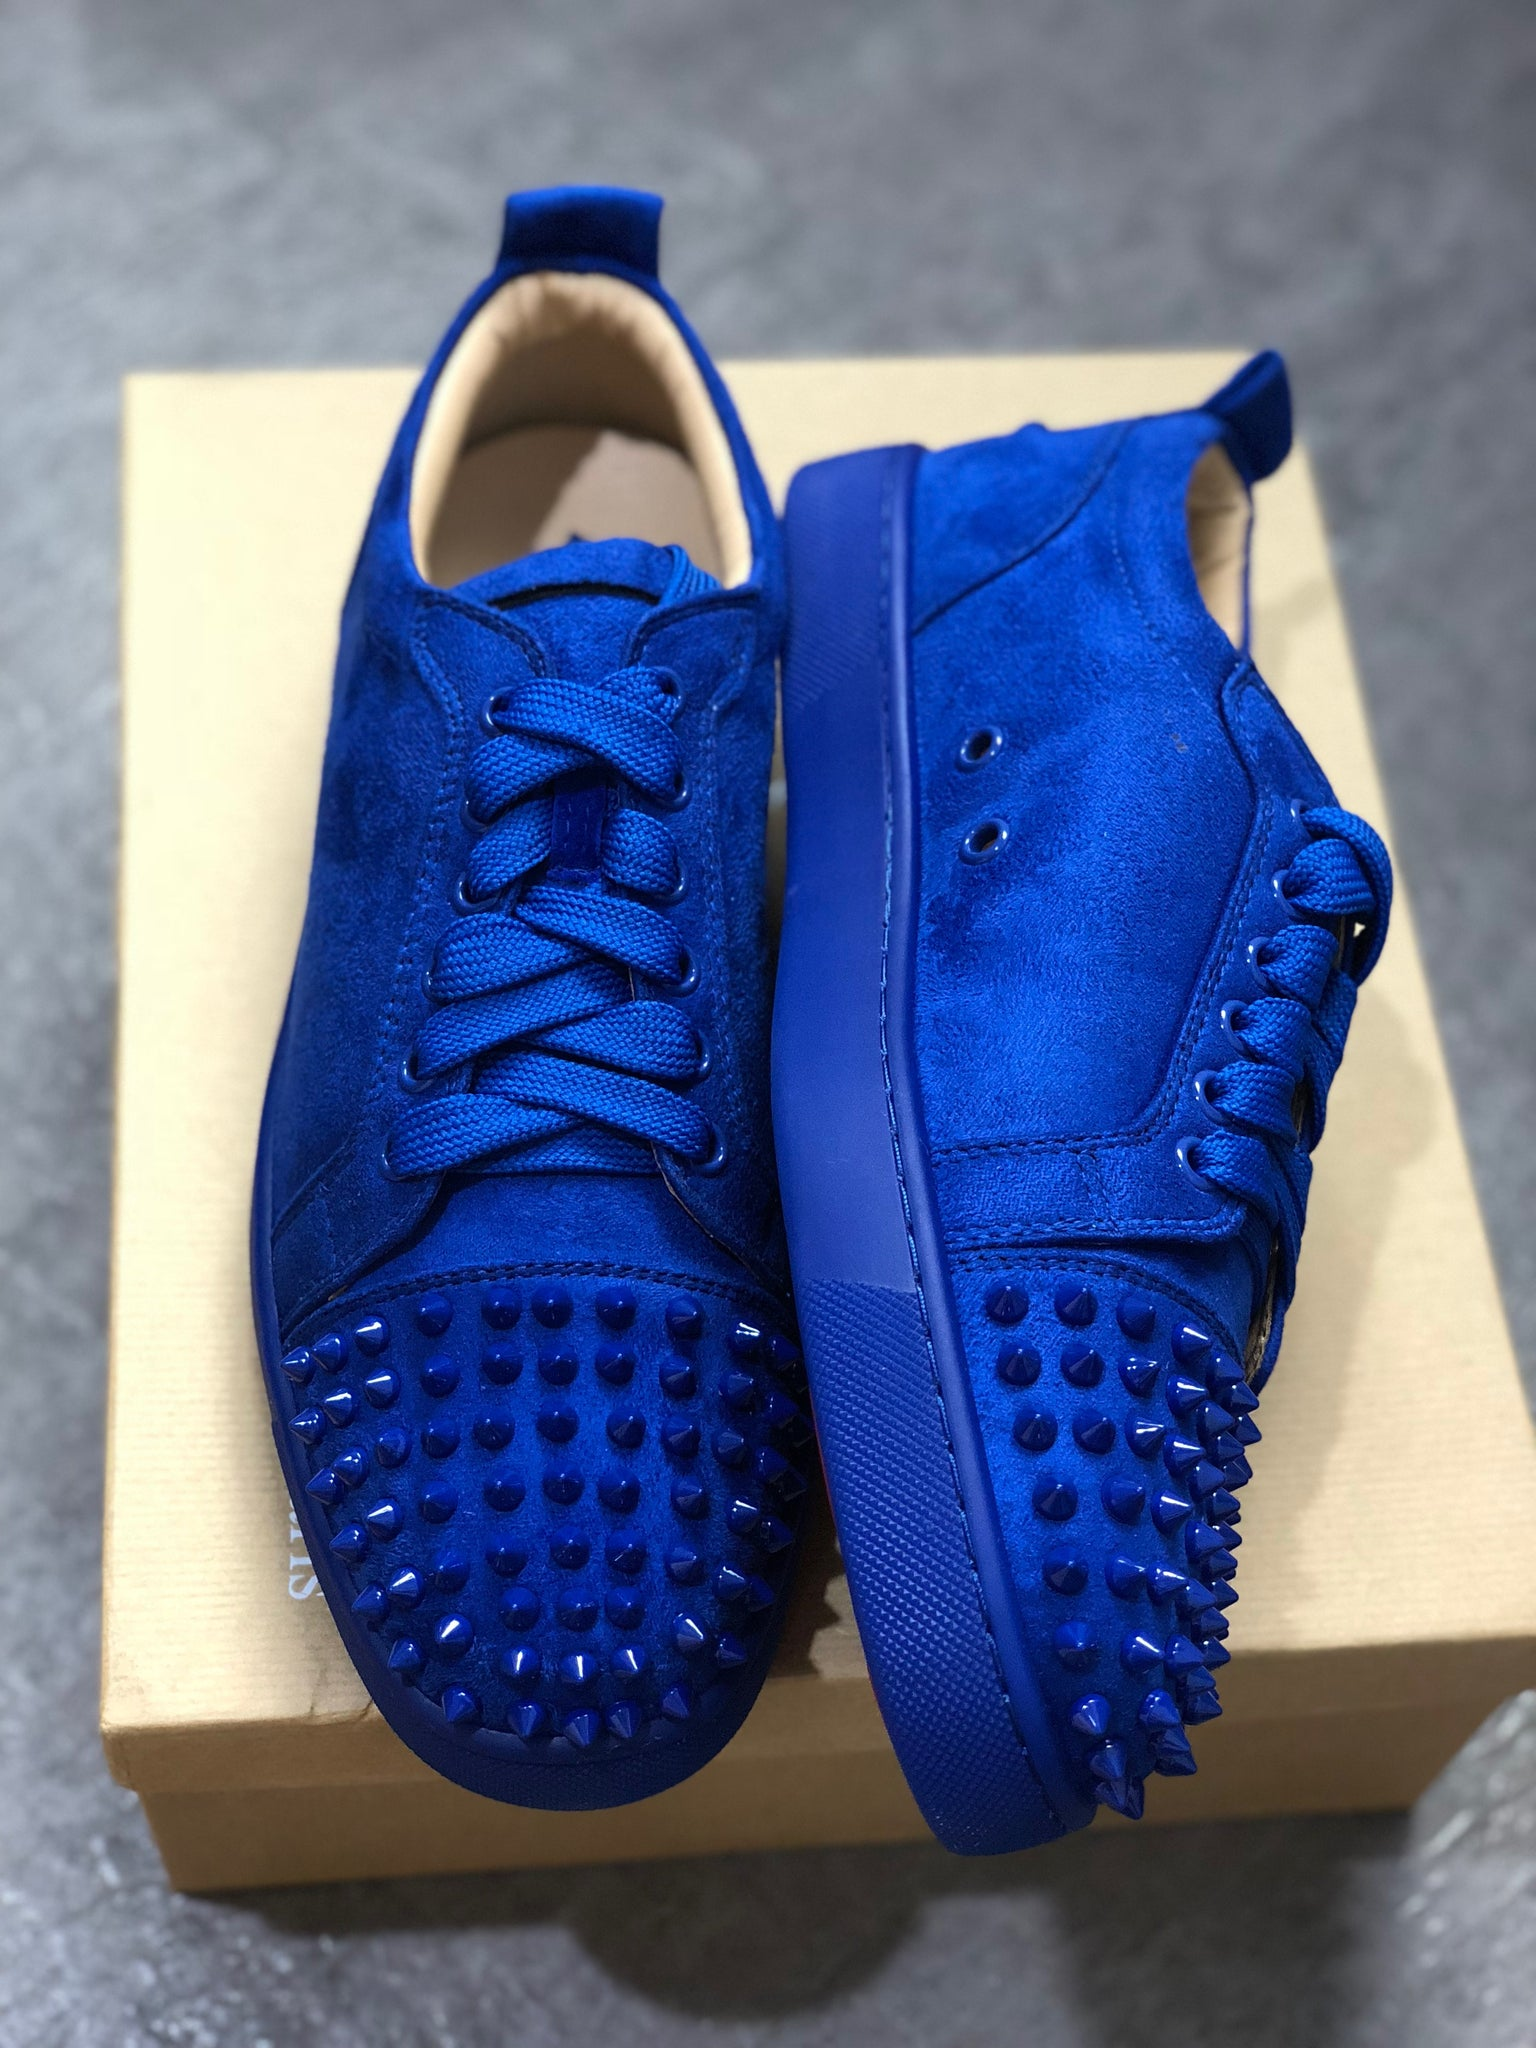 5de080e575f Blue Suede Low Top Louboutin Sneakers – Antigua fashion